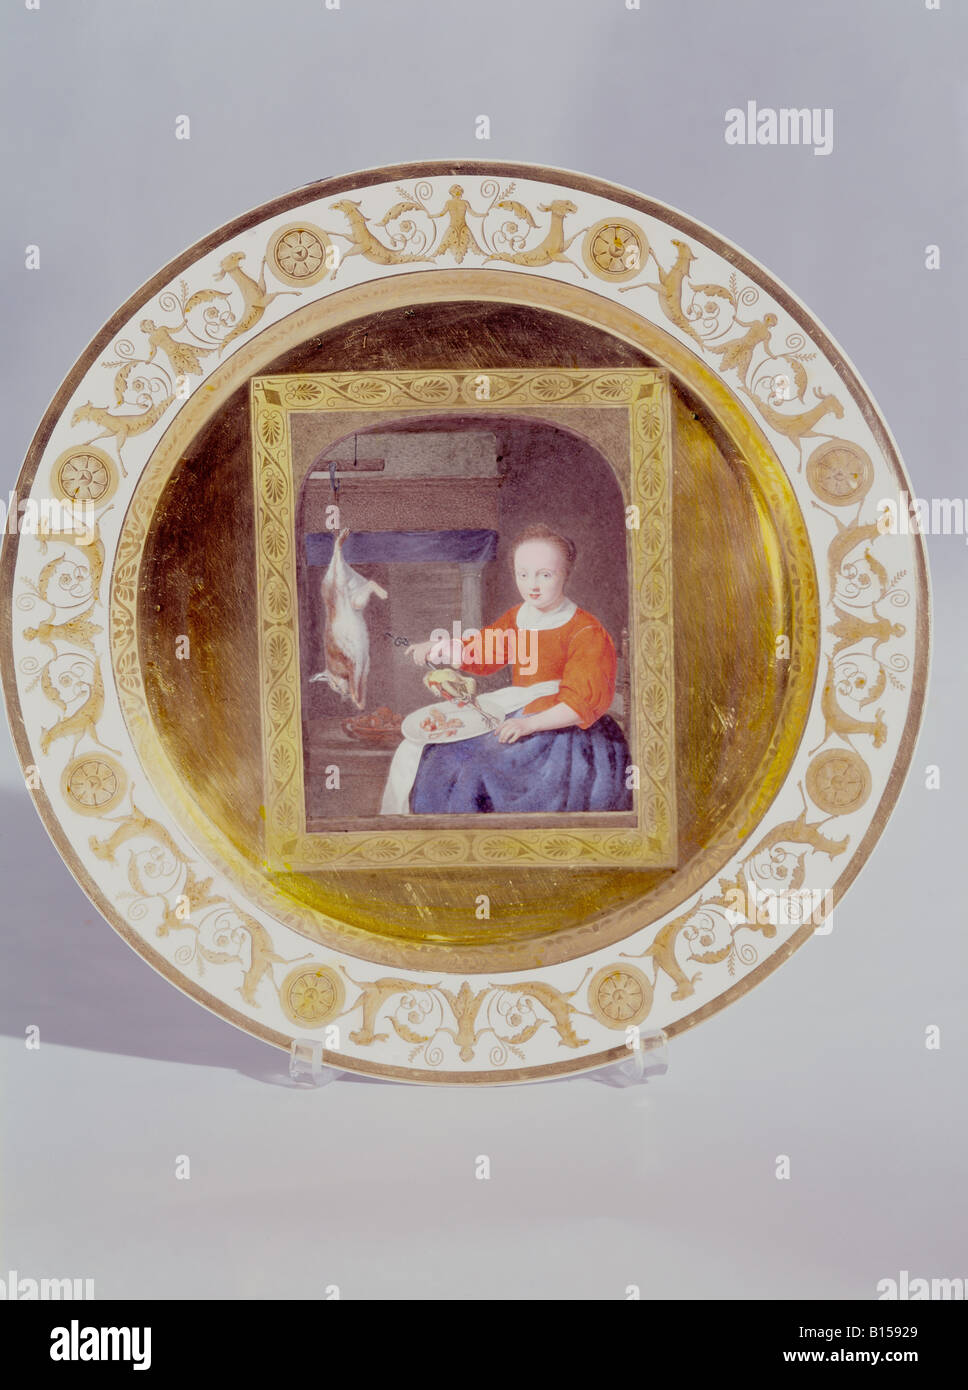 """fine arts, porcelain, plate, series with gold plating, """"Cook with rabbit and pheasant"""", based on Gabriel Metsu (1629 Stock Photo"""